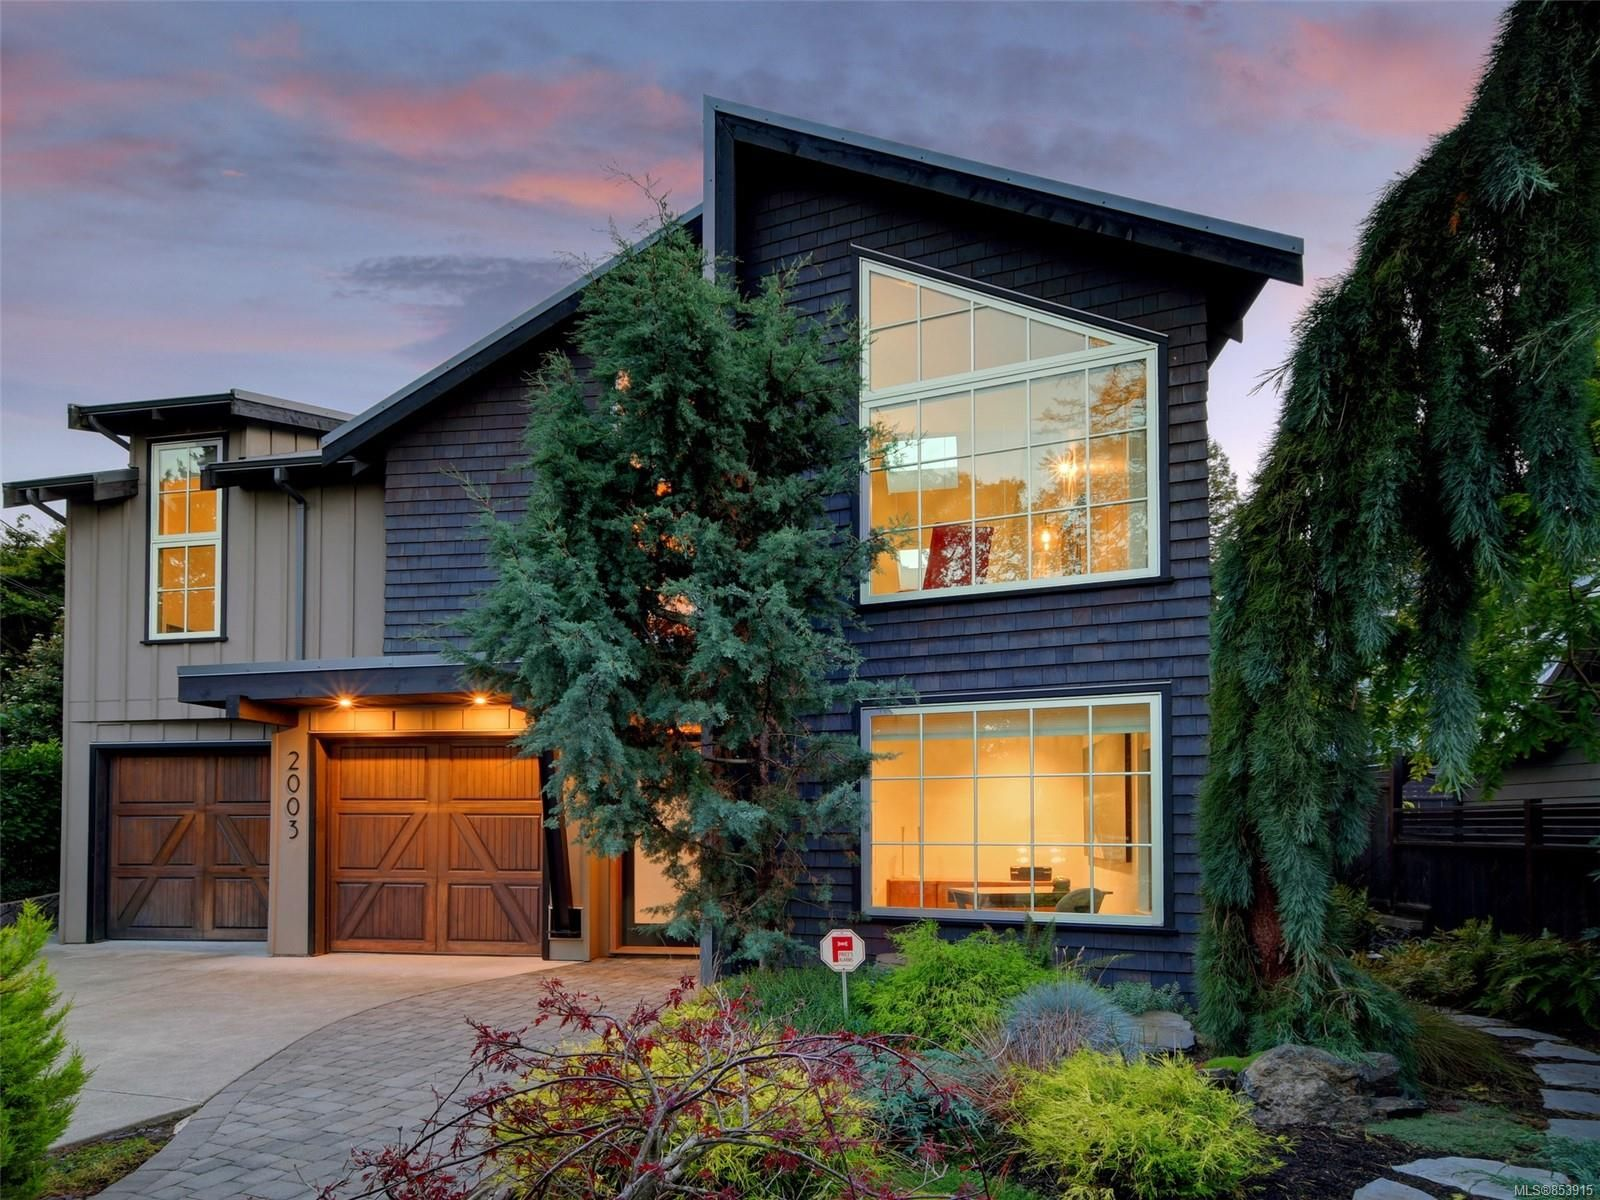 Main Photo: 2003 Runnymede Ave in : Vi Fairfield East House for sale (Victoria)  : MLS®# 853915